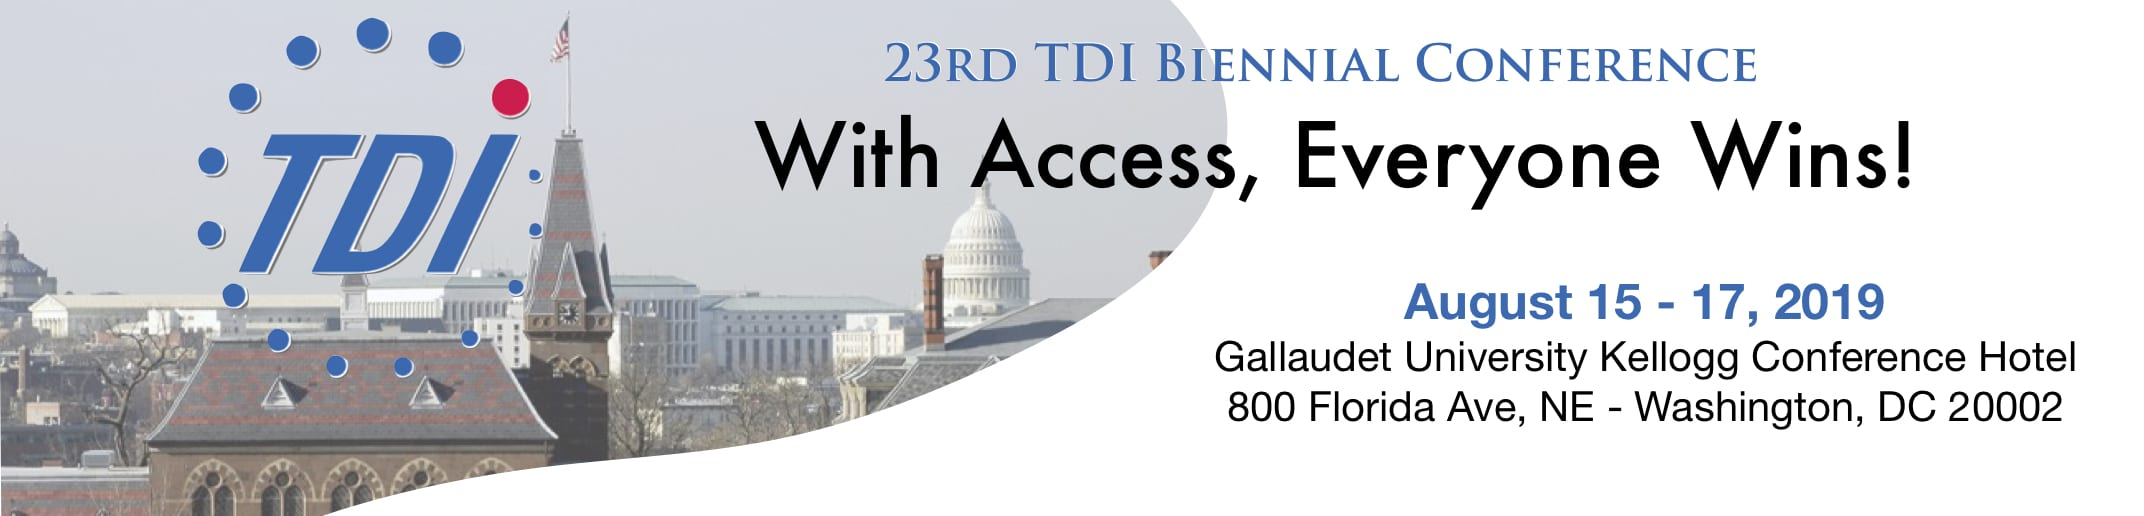 """Aerial view of Gallaudet's Chapel Hall and the US Capitol. Text reads: (TDI logo) 23rd TDI Biennial Conference """"With Access, Everyone Wins!"""" August 15-17, 2019 at Gallaudet University Kellogg Conference & Hotel"""